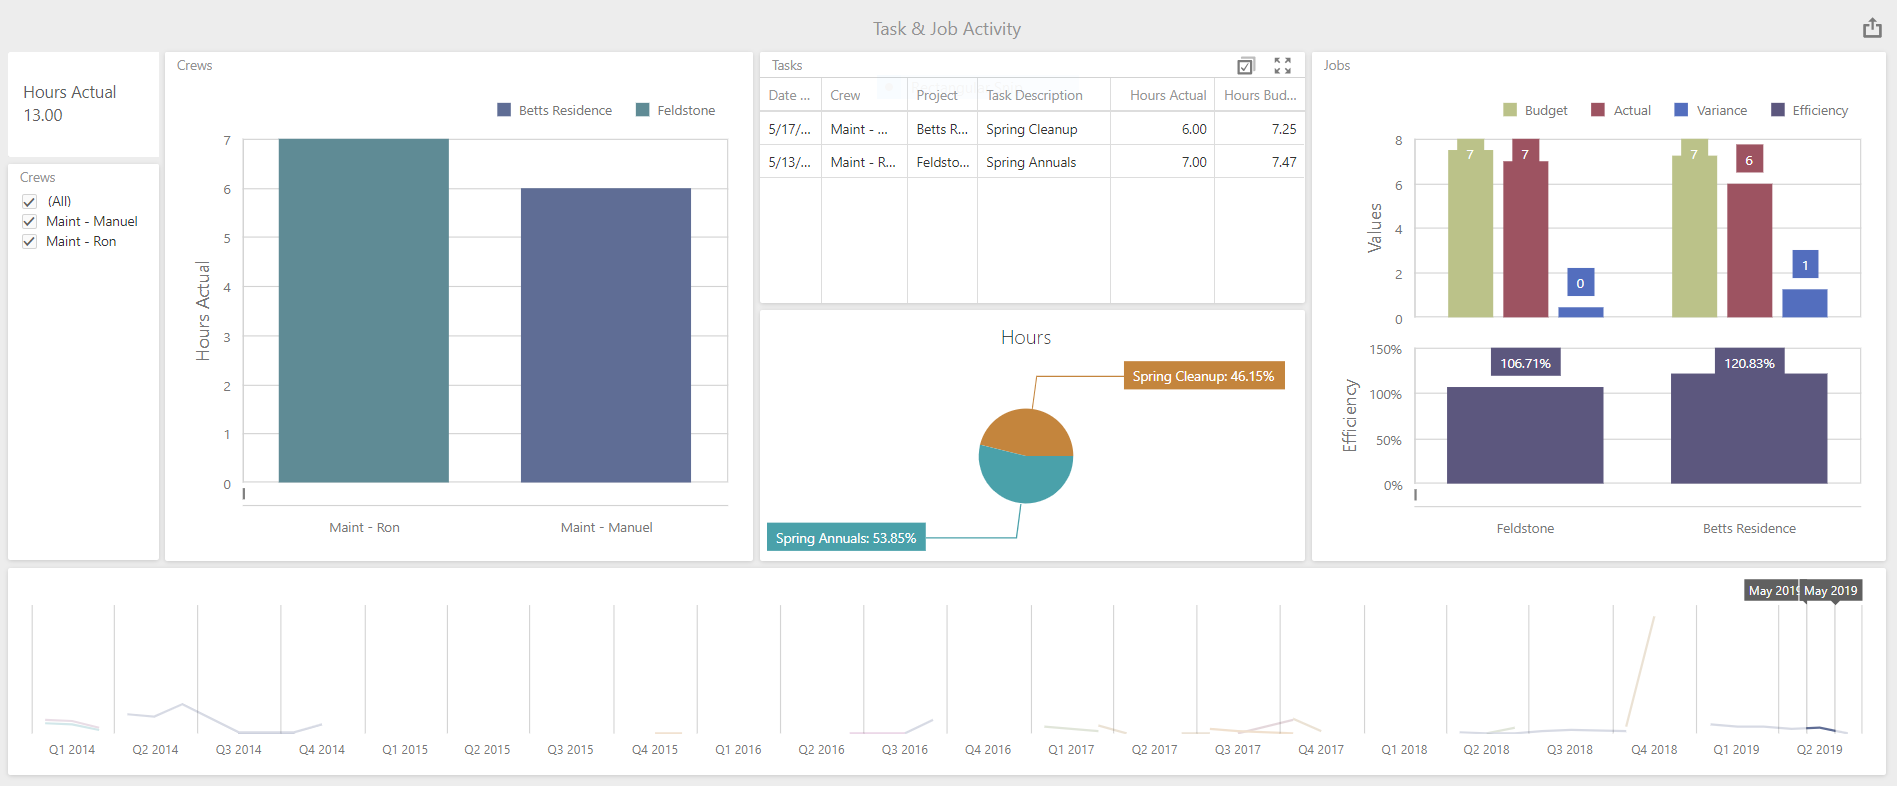 landscape business visual reporting - Task & Job Activity Budget vs Actual